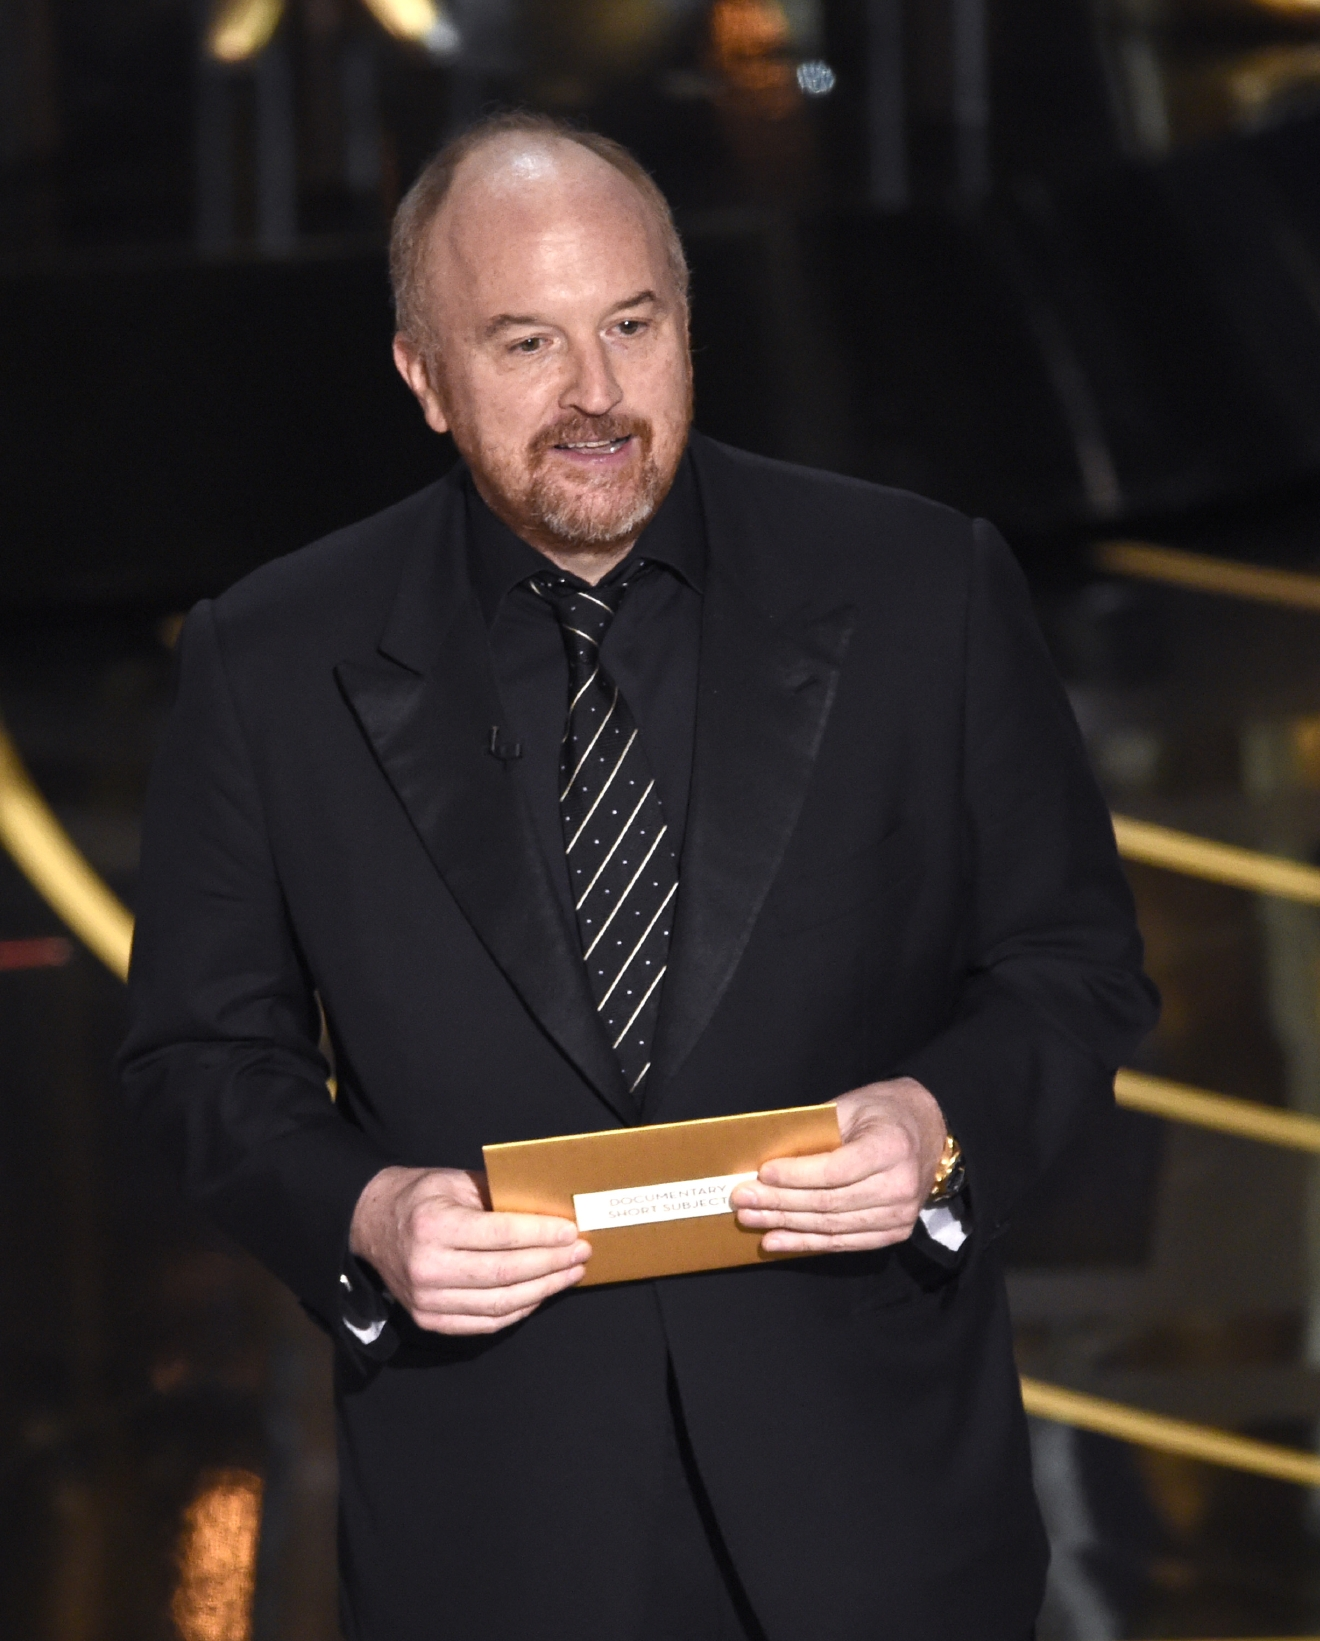 Louis C.K. presents the award for best documentary short film at the Oscars on Sunday, Feb. 28, 2016, at the Dolby Theatre in Los Angeles. (Photo by Chris Pizzello/Invision/AP)